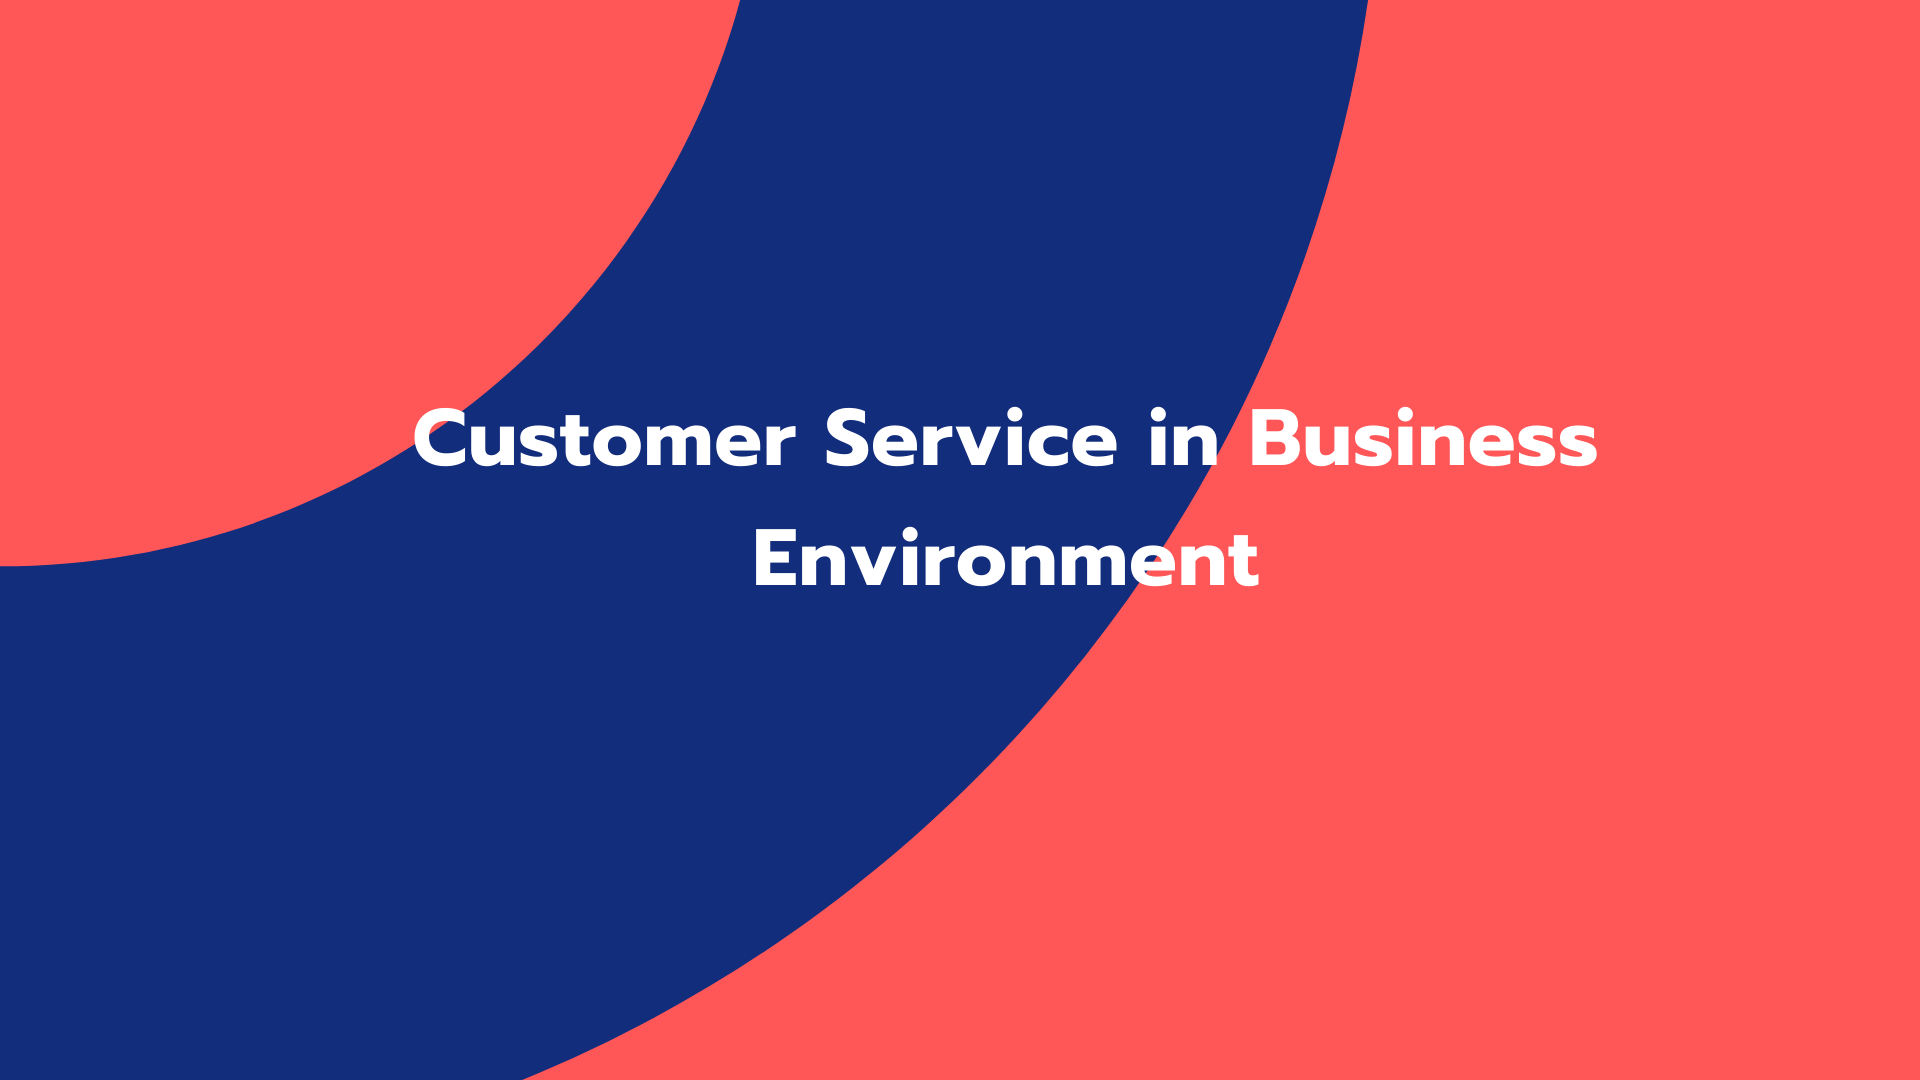 Customer Service in Business Environment